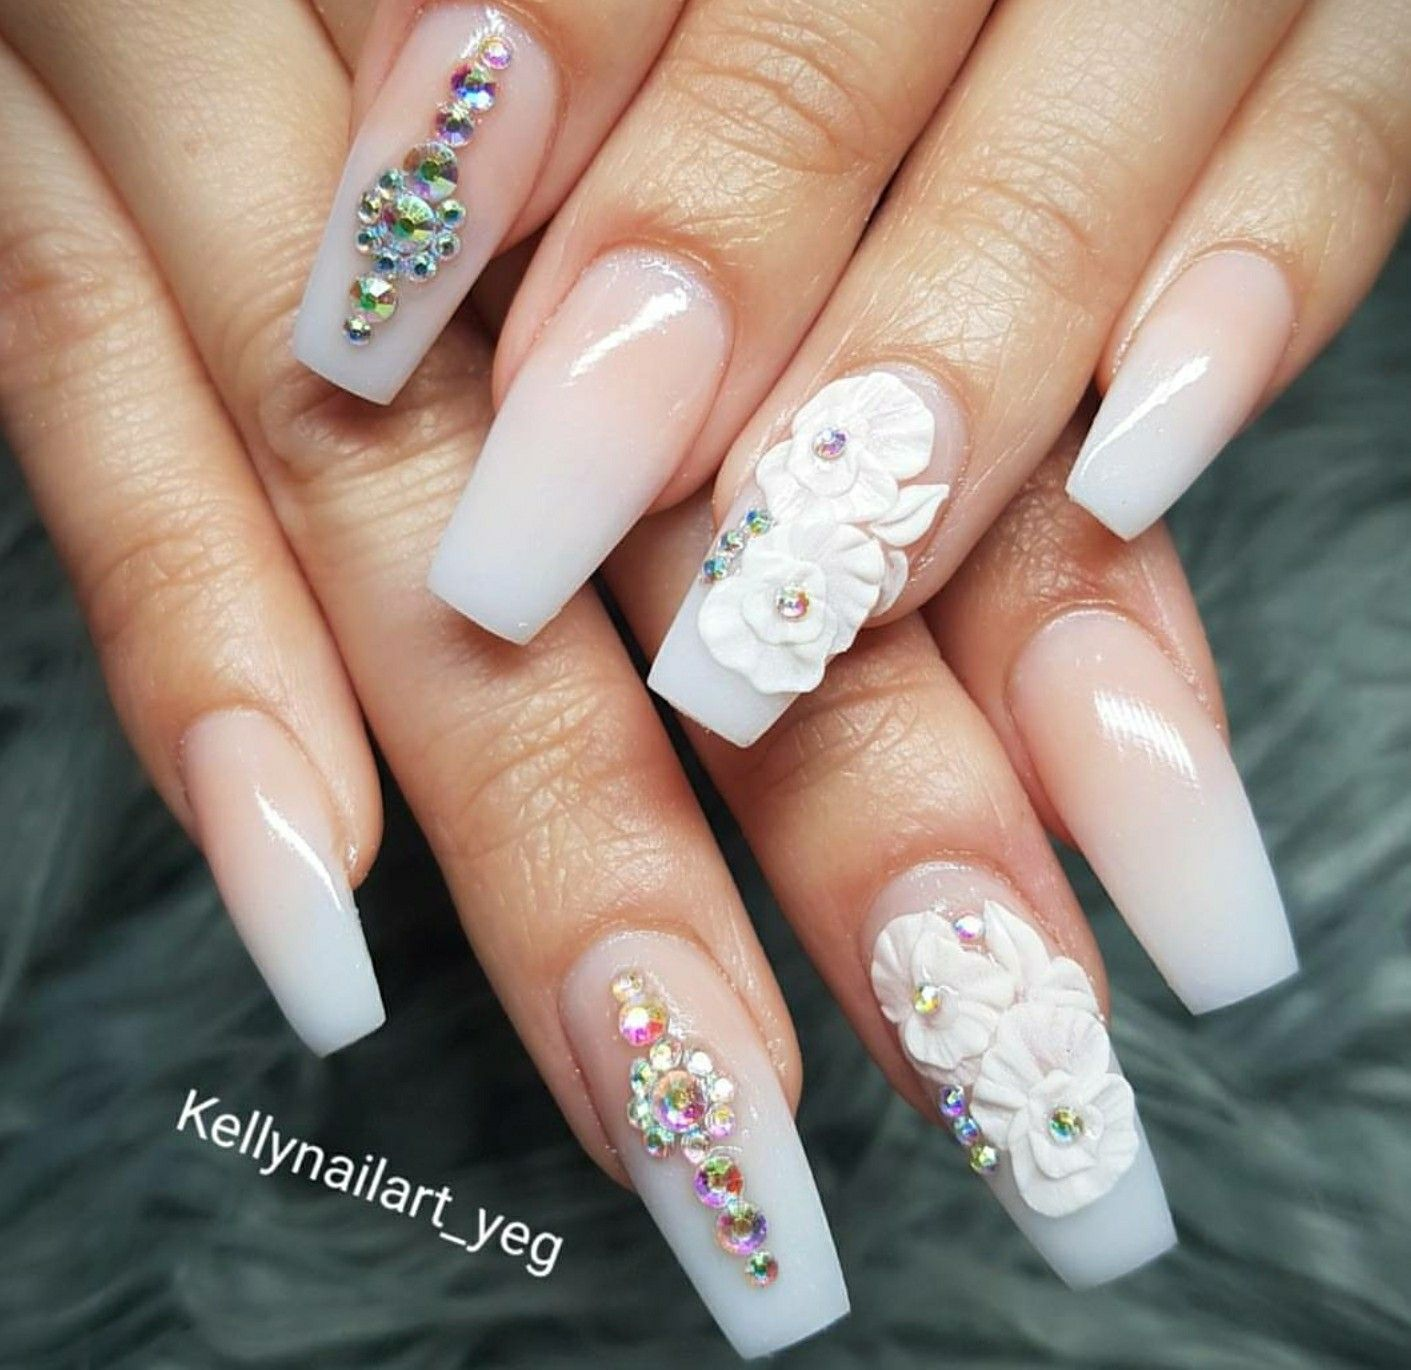 Tapered Square Nails Ombre Nails Nails With Rhinestones 3d Flowers Acrylic Nails Flower Nails Rhinestone Nails Ombre Nails Glitter Tapered Square Nails